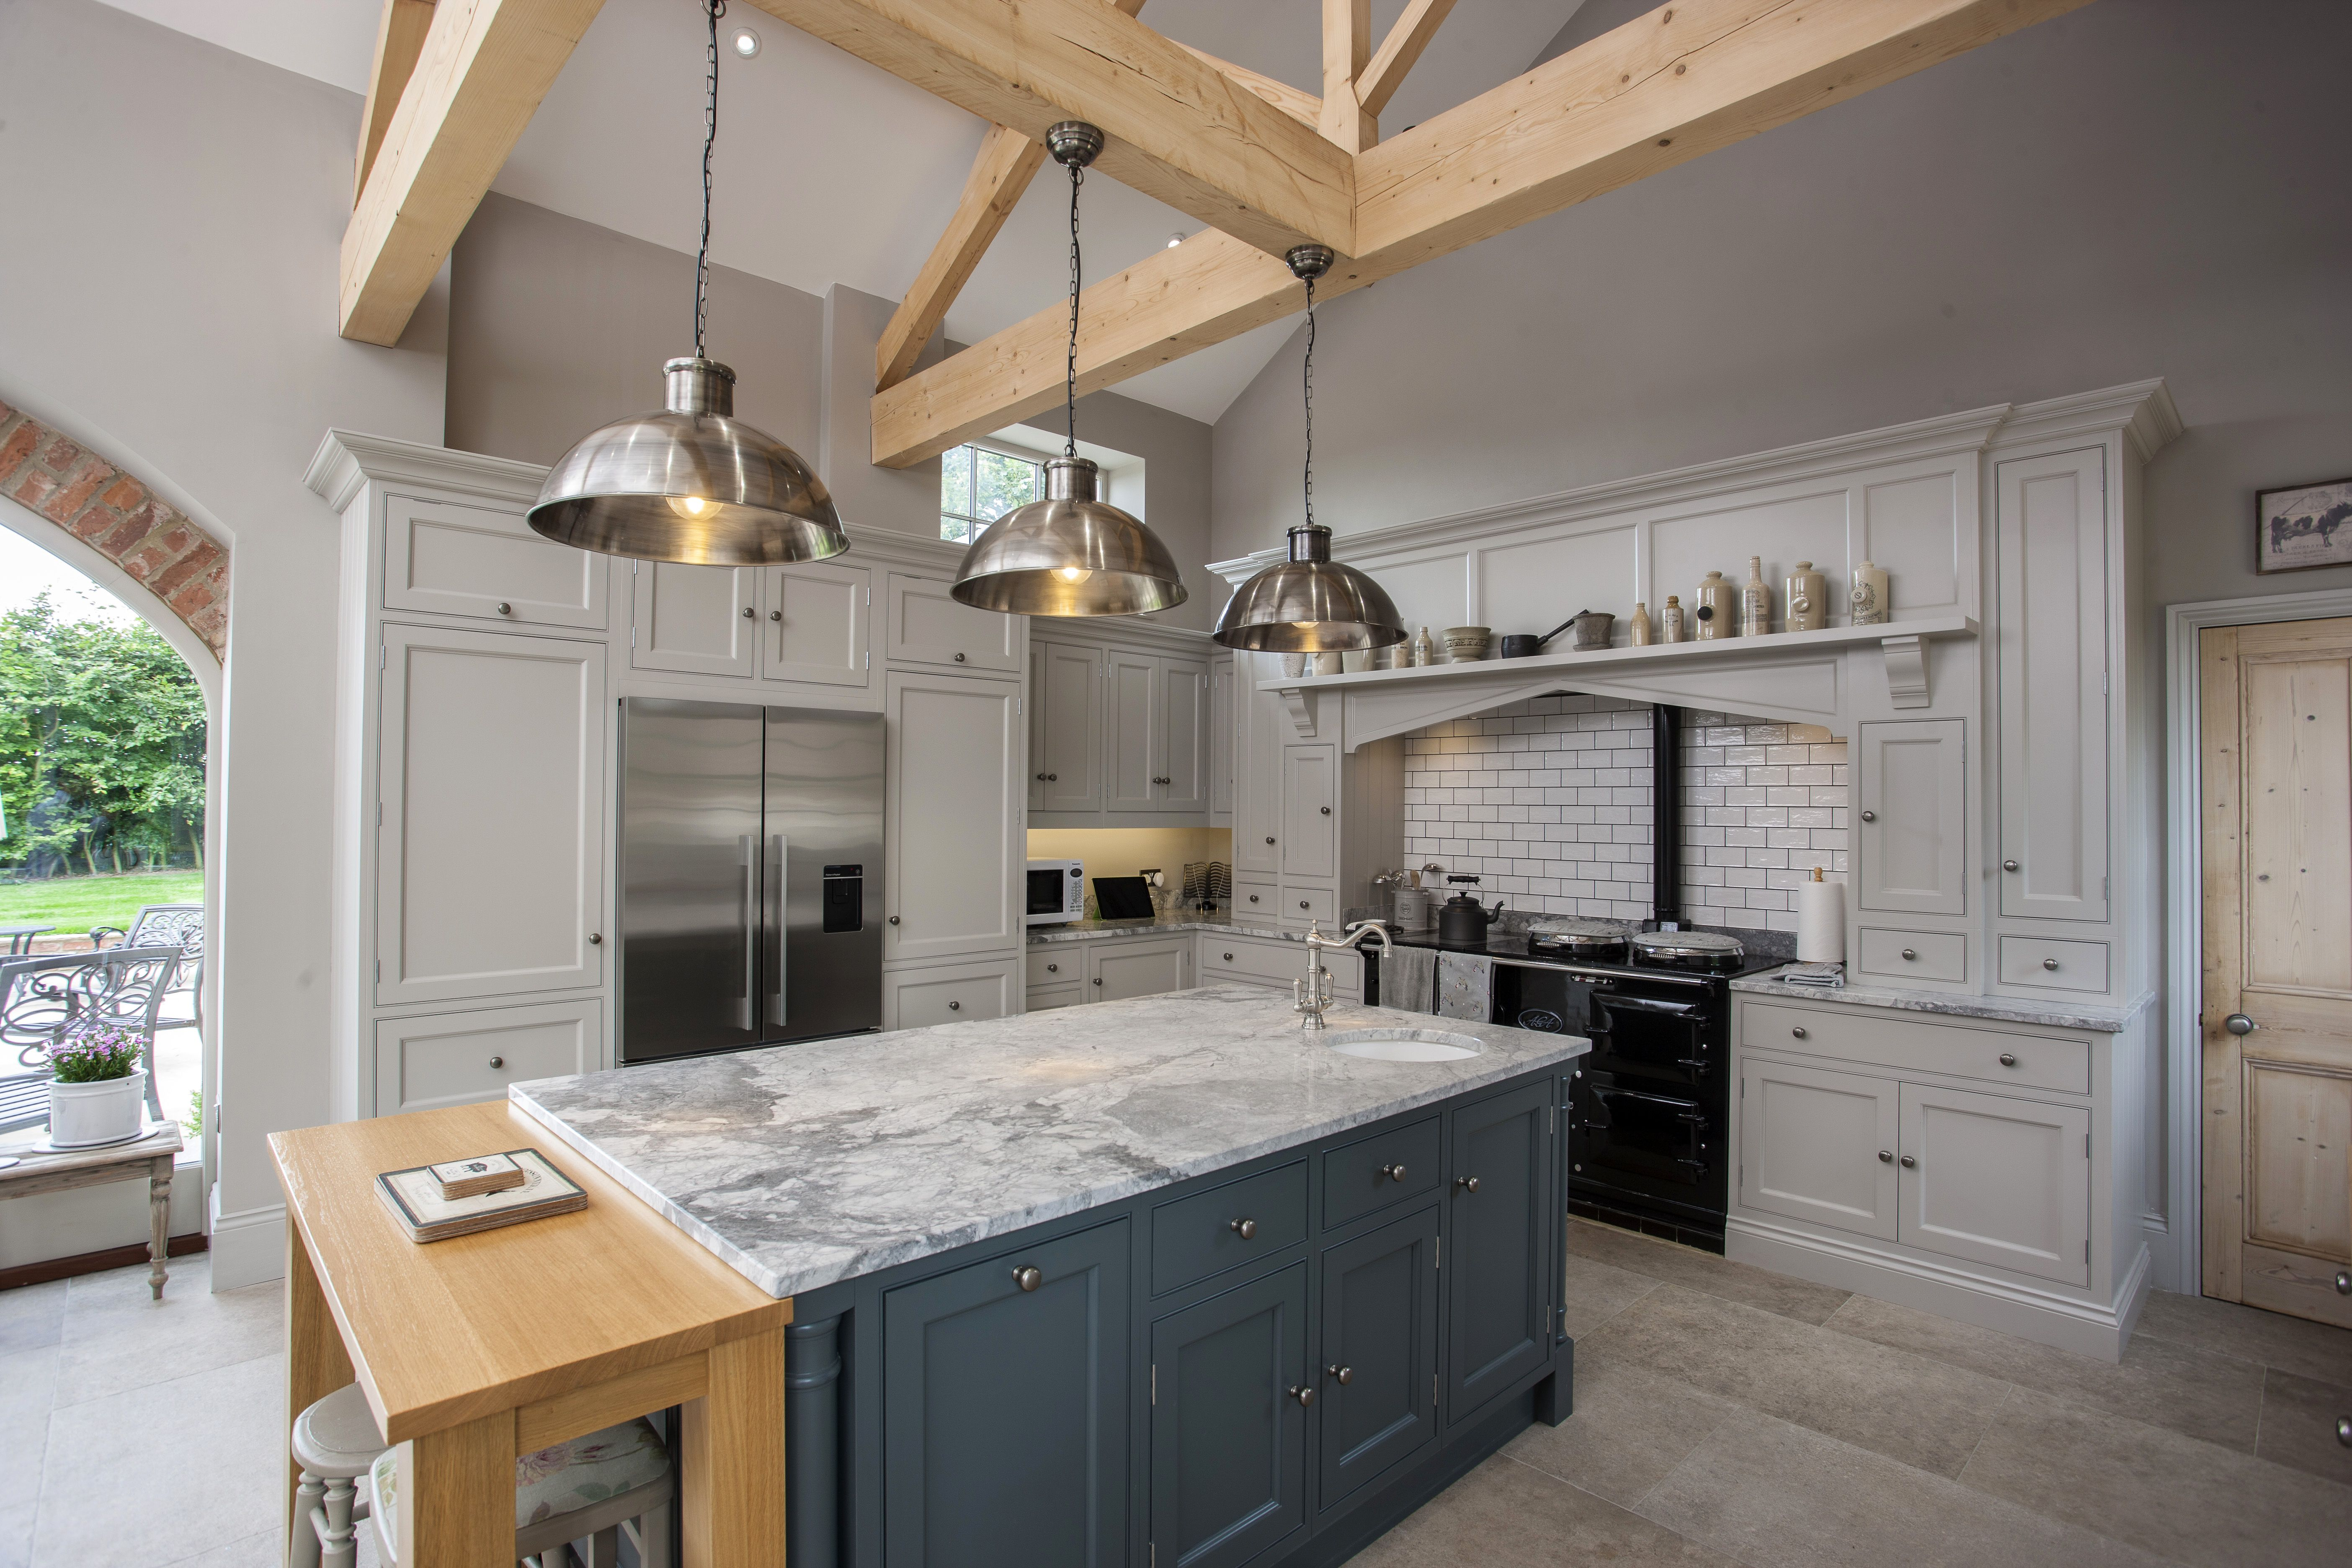 Best We Painted This Beautiful Converted Barn In Farrow Ball 640 x 480